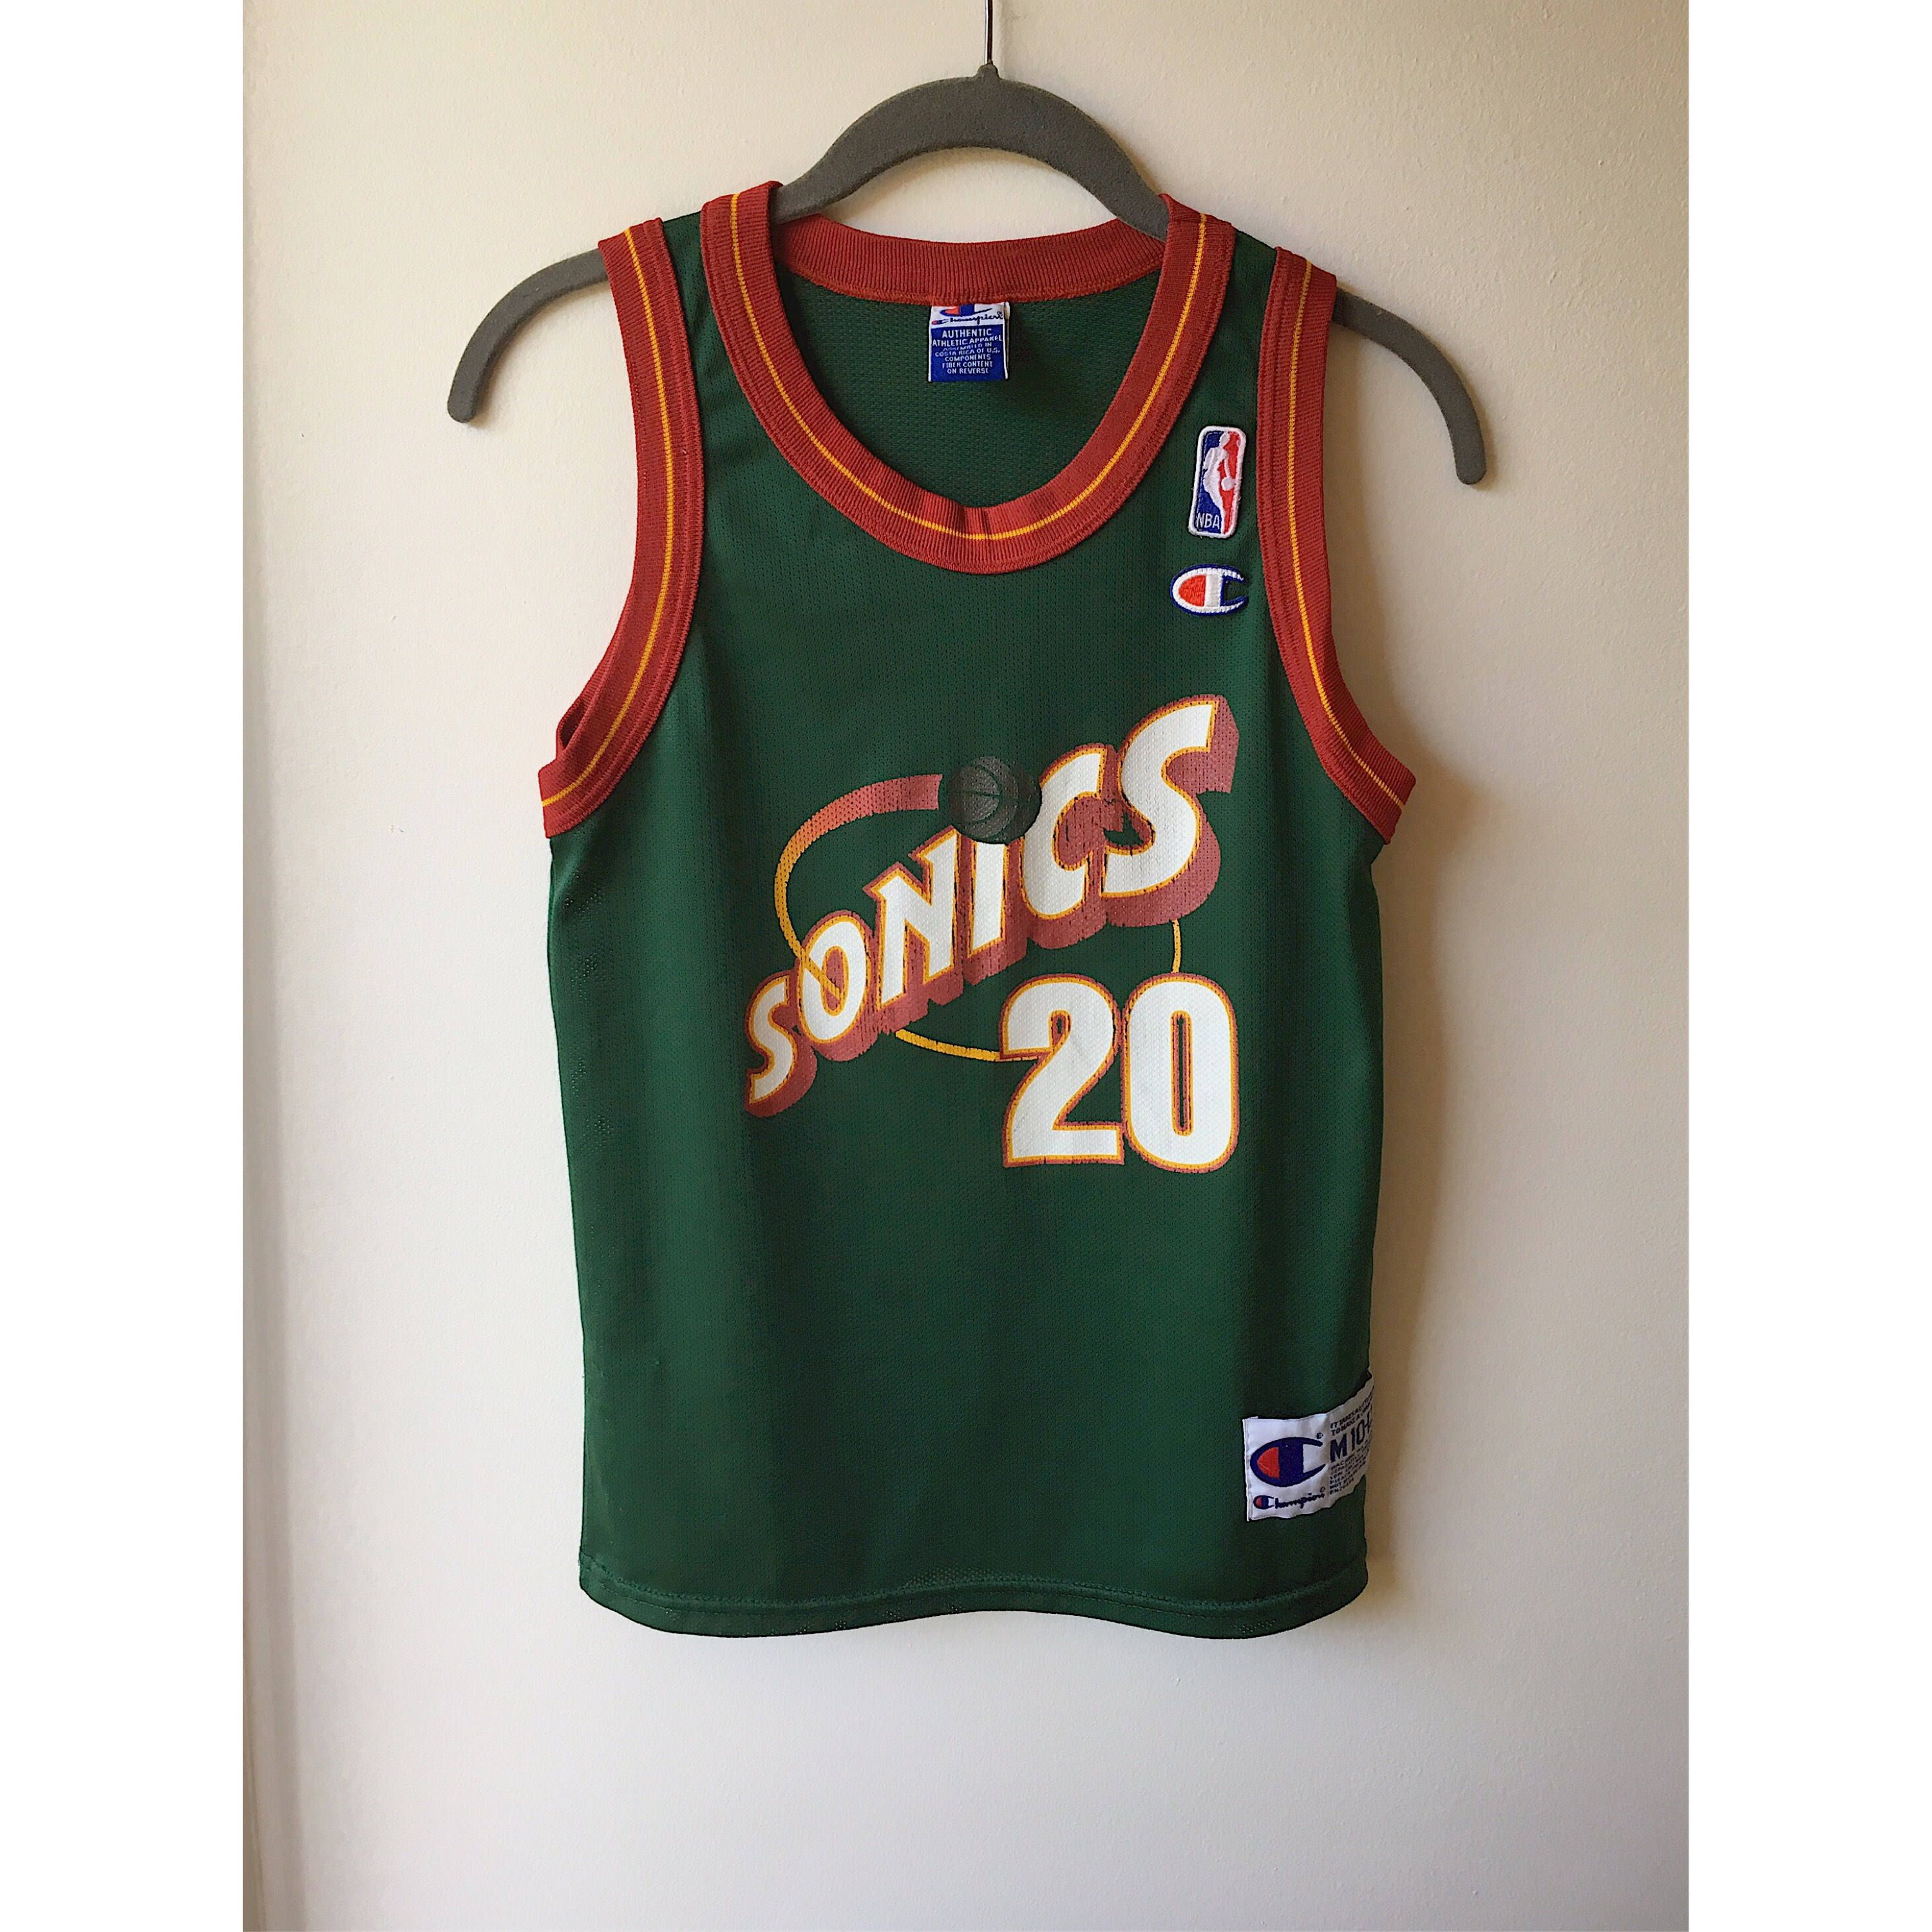 Vintage Sonics Basketball Jersey - Payton 20 NBA - Retro Champion Athletic  Style Sports Wear Youth 10-12 Fits Women Size XS Small by TheThicketParty  on Etsy 3f775a34cc